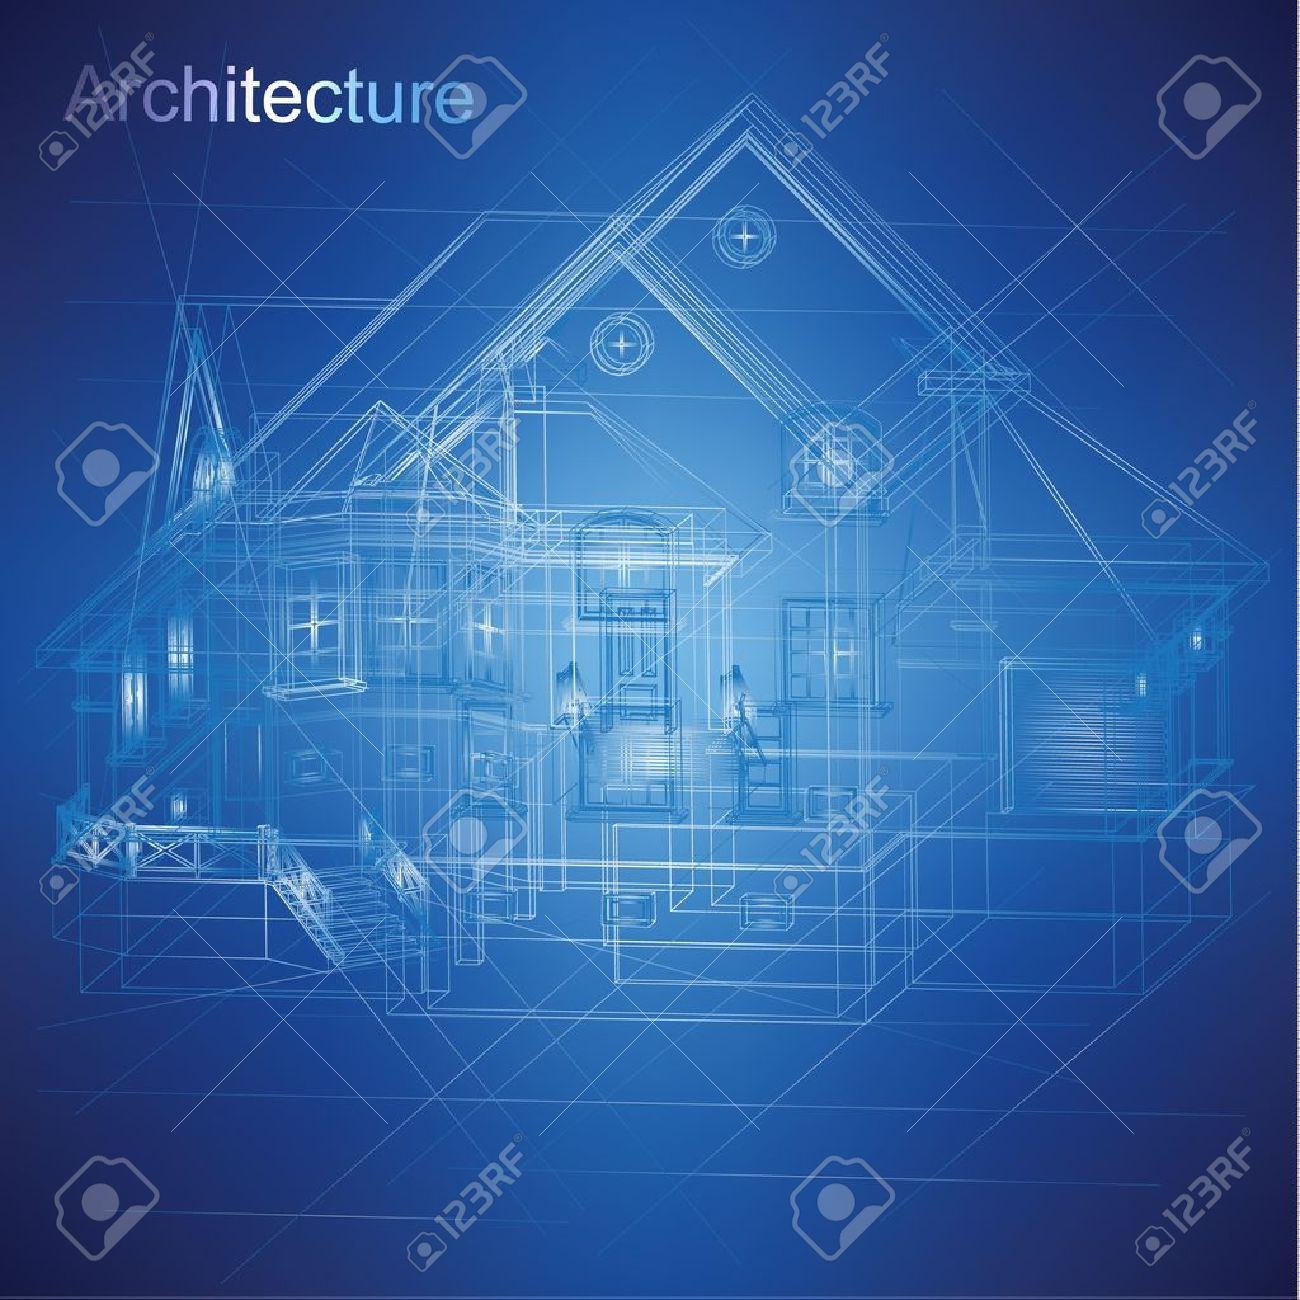 Architectural Drawing Urban Blueprint Vector Architectural Background